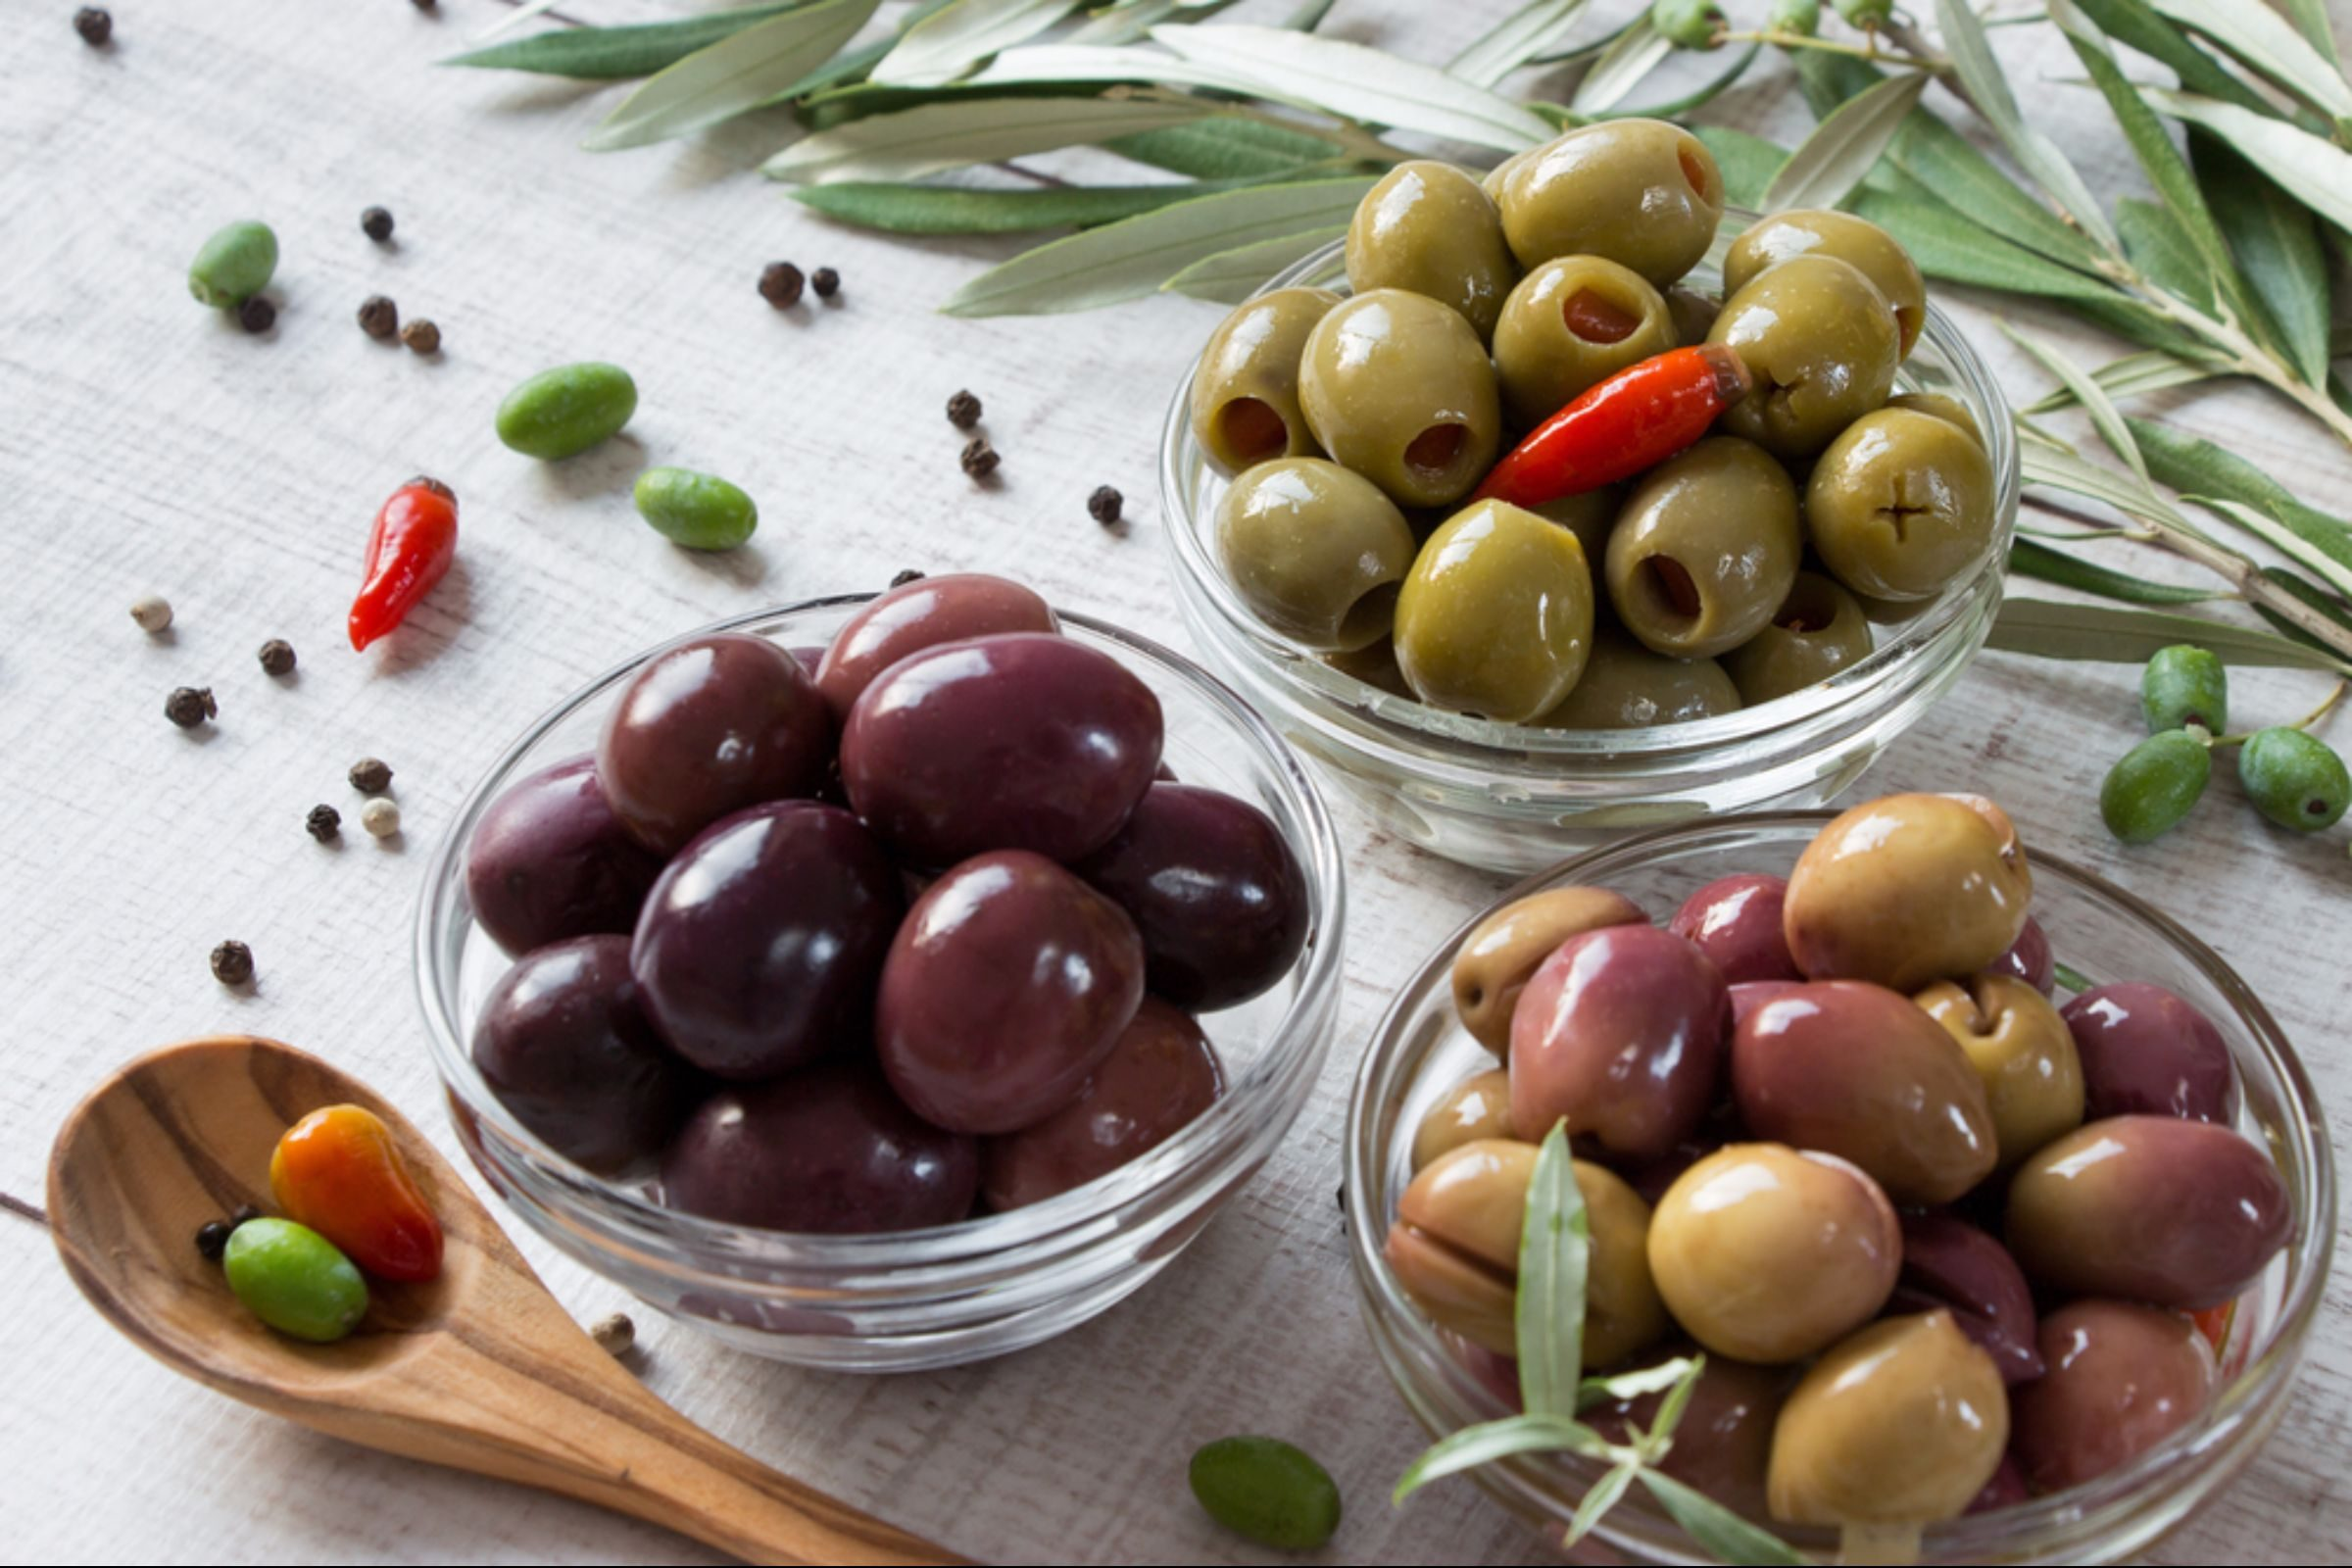 Kalamata and green olives